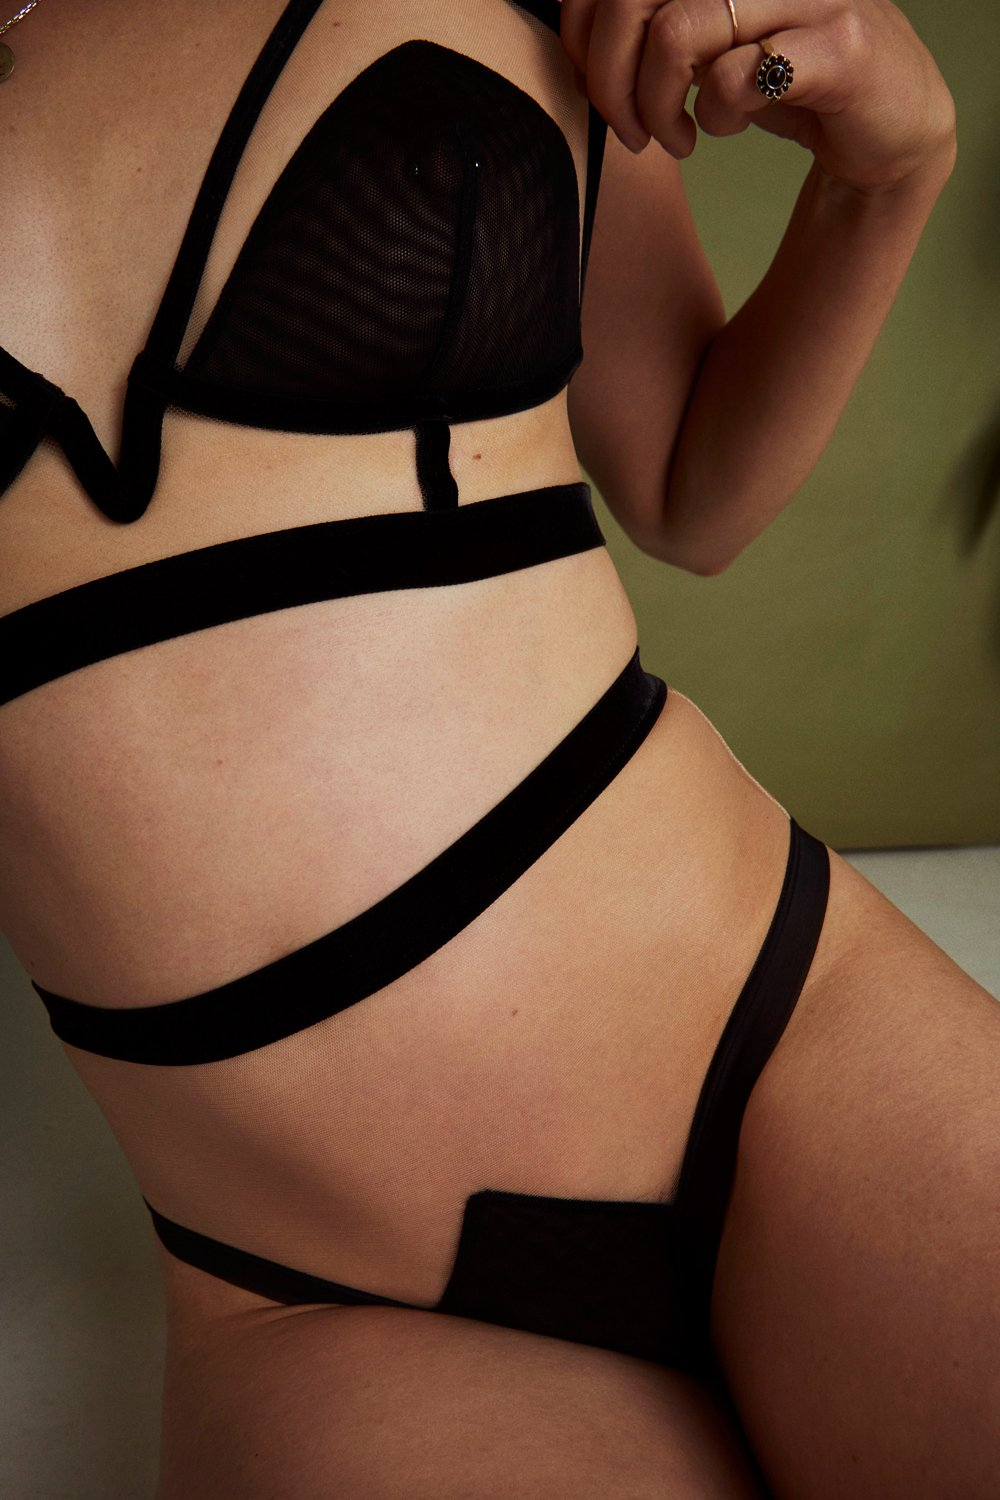 Break the glass ceiling - LONGLINE TRIANGLE BRA